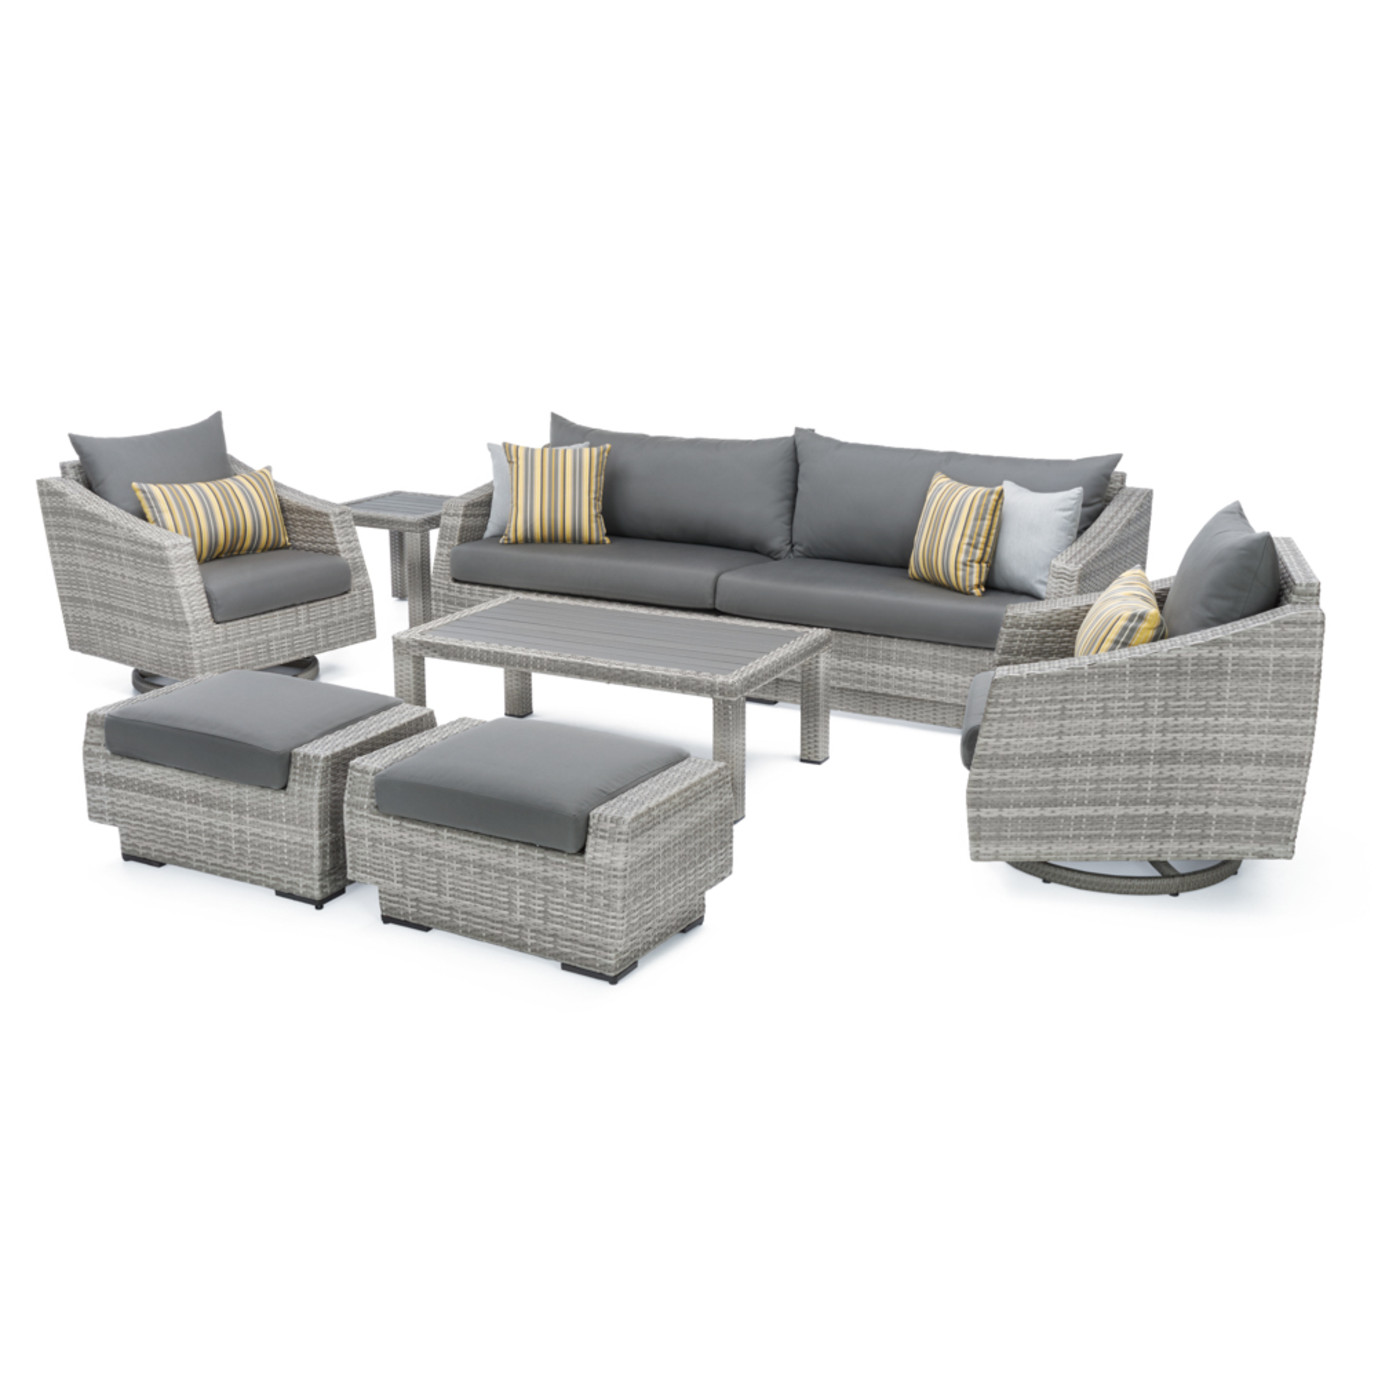 Cannes™ Deluxe 8pc Sofa & Club Chair Set - Charcoal Gray